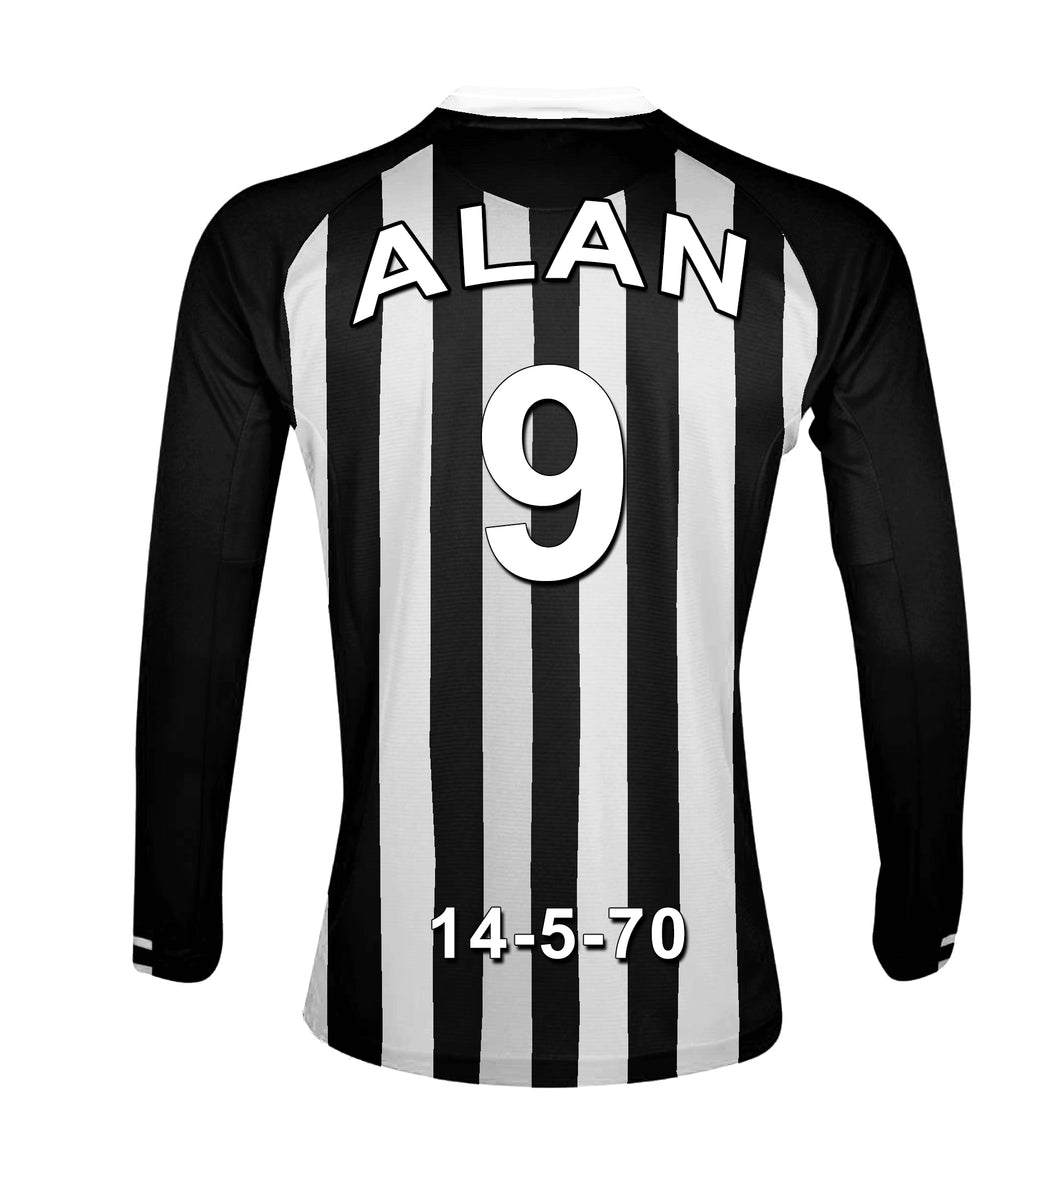 Newcastle Football Club black and white personalised football shirt canvas